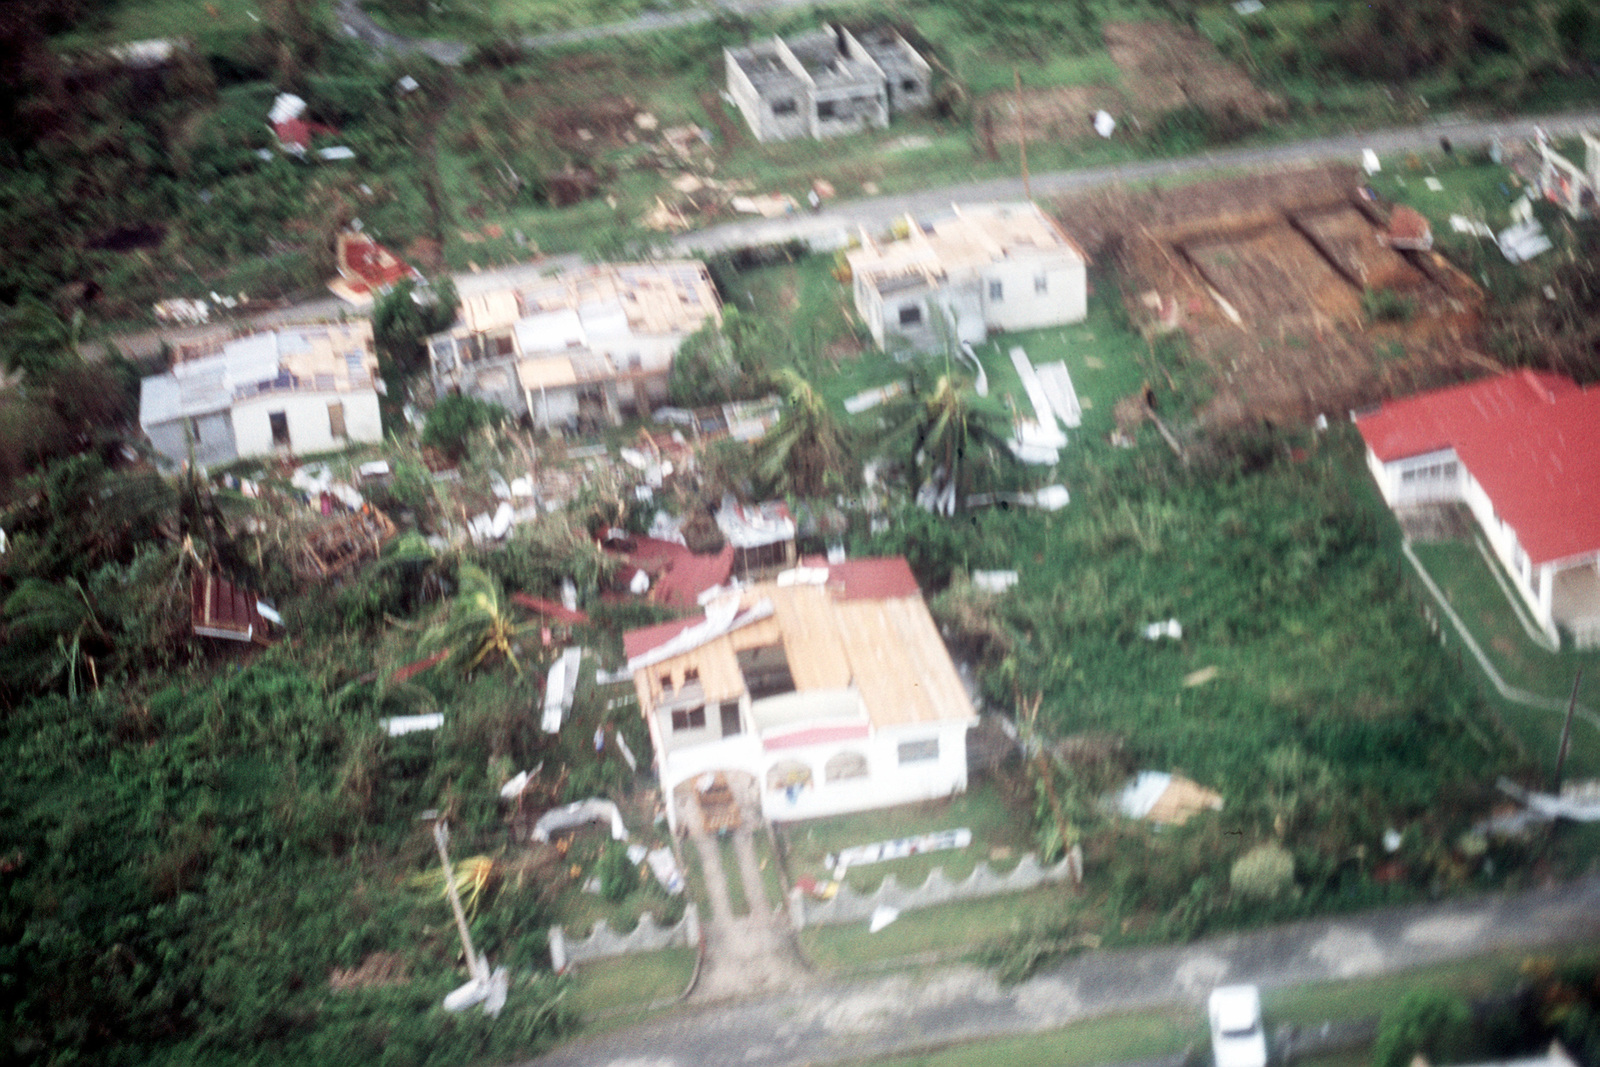 An aerial of some of the damaged buildings and uprooted trees left in the wake of Hurricane Gilbert, which pounded the island with 180-mph winds and torrential rains on September 12 and 13